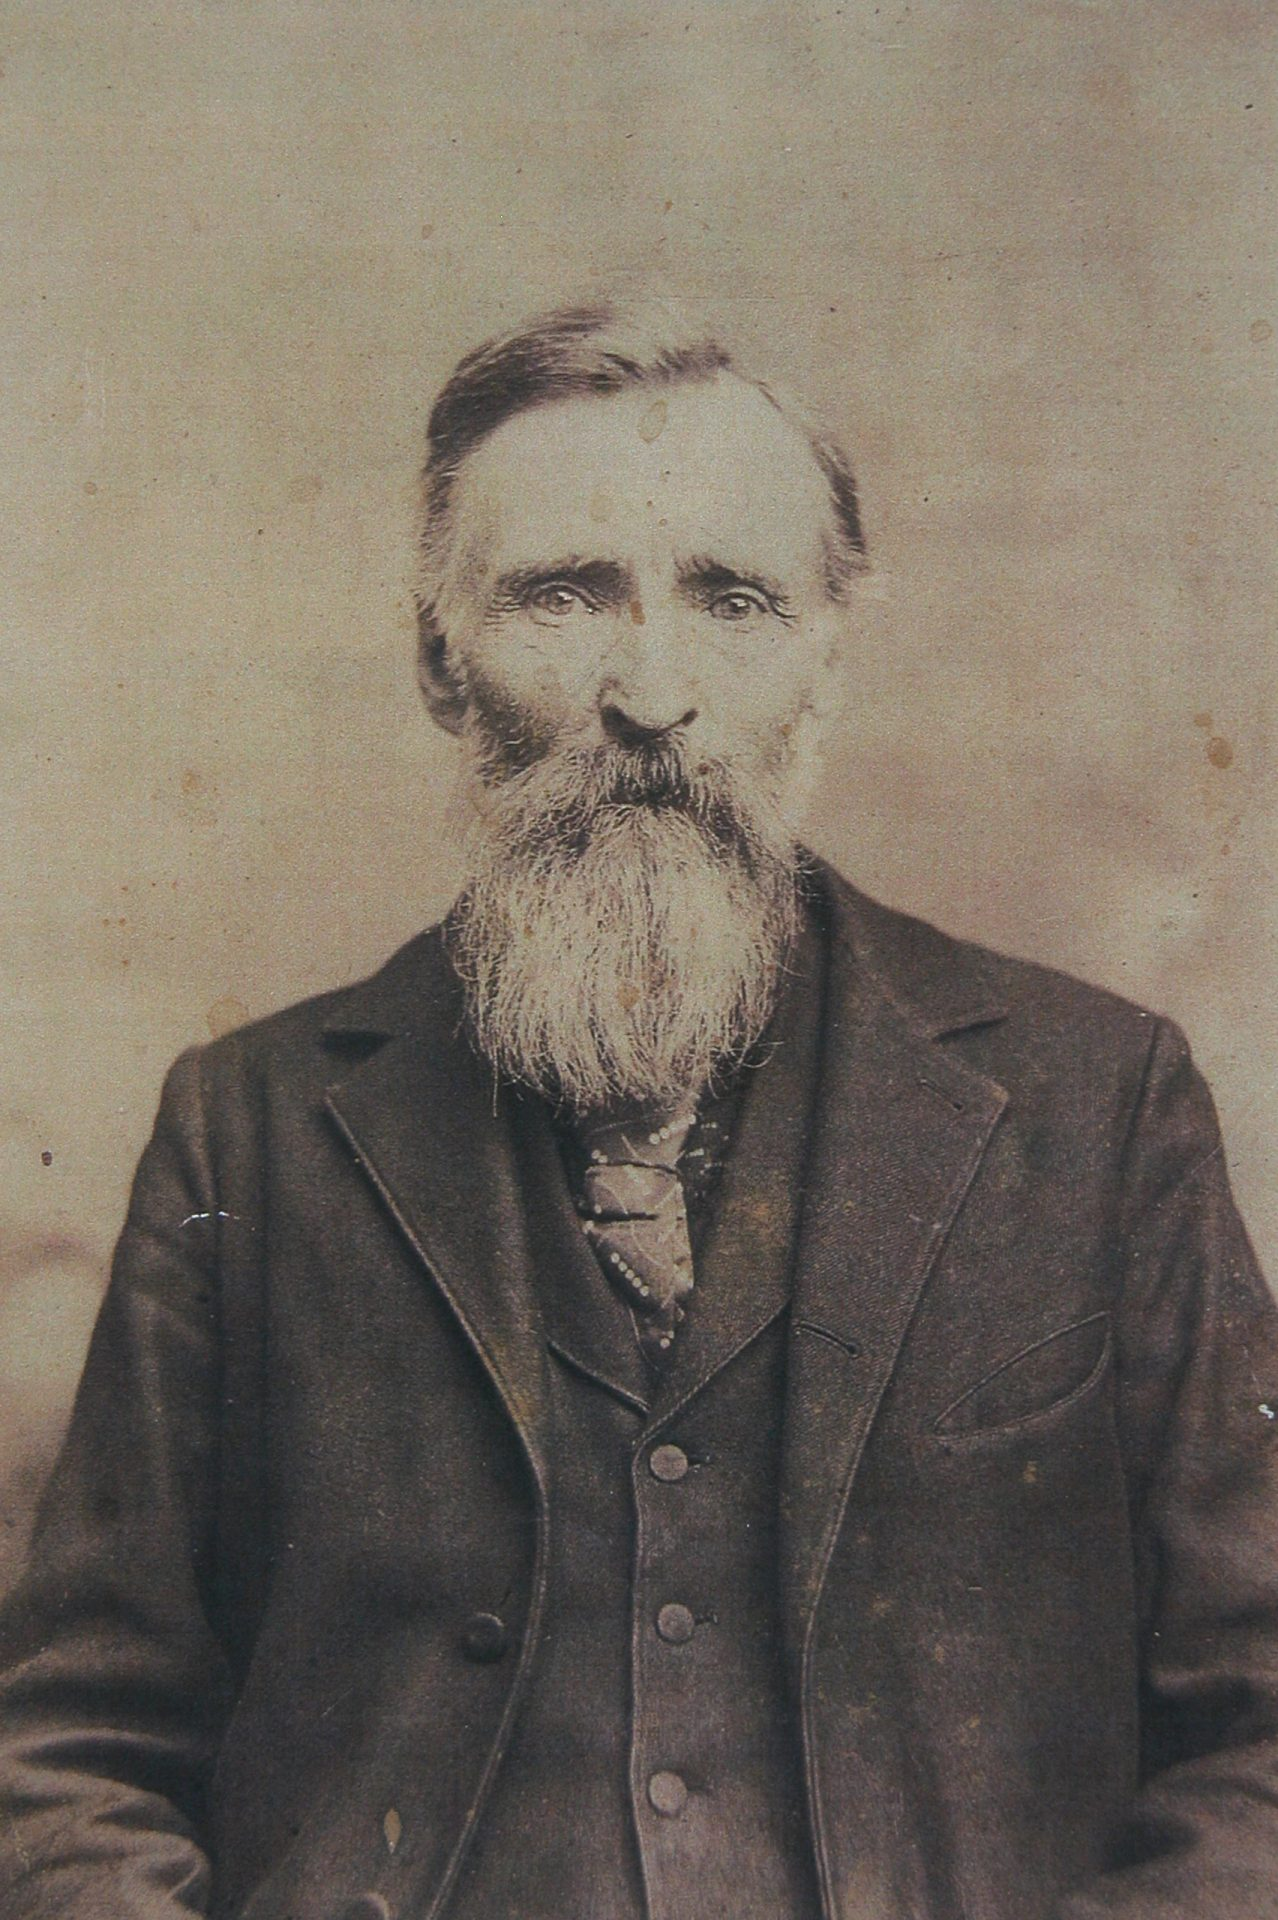 William J Samson, John Samson's great grandfather.